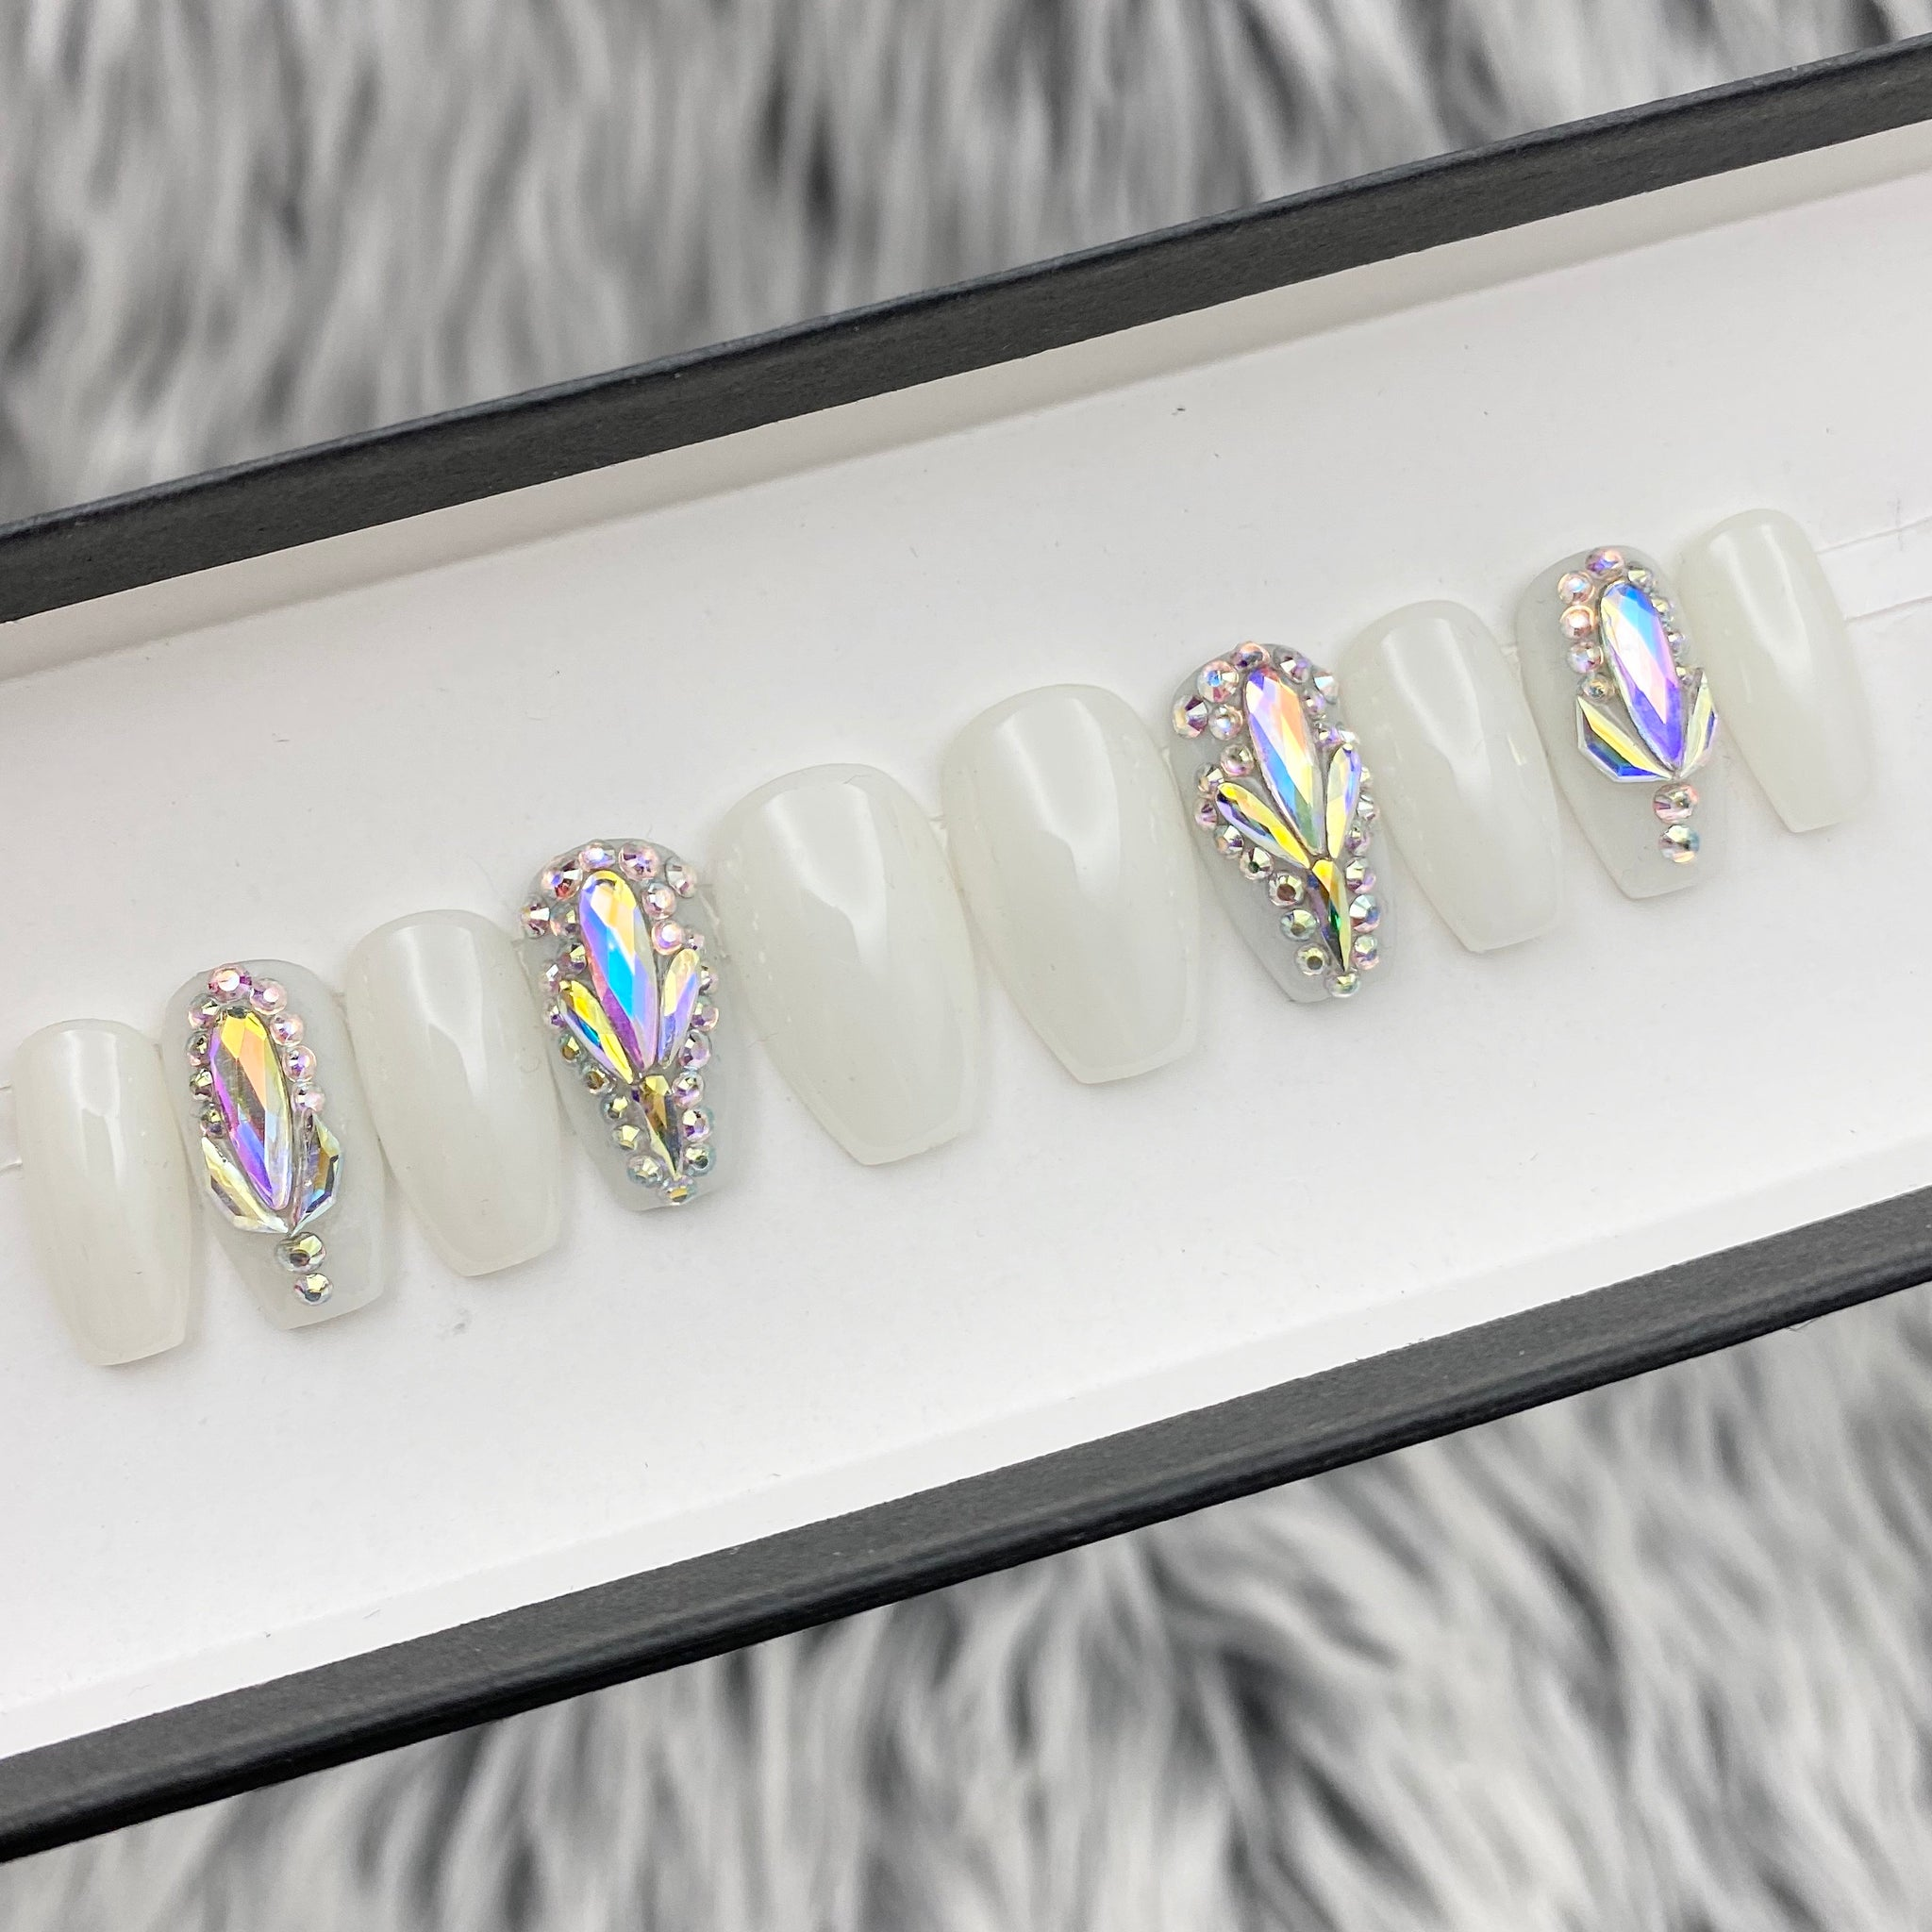 READY TO SHIP SET NOW- WHITE OPAL, COFFIN, SIZE 3,6,7,7,9